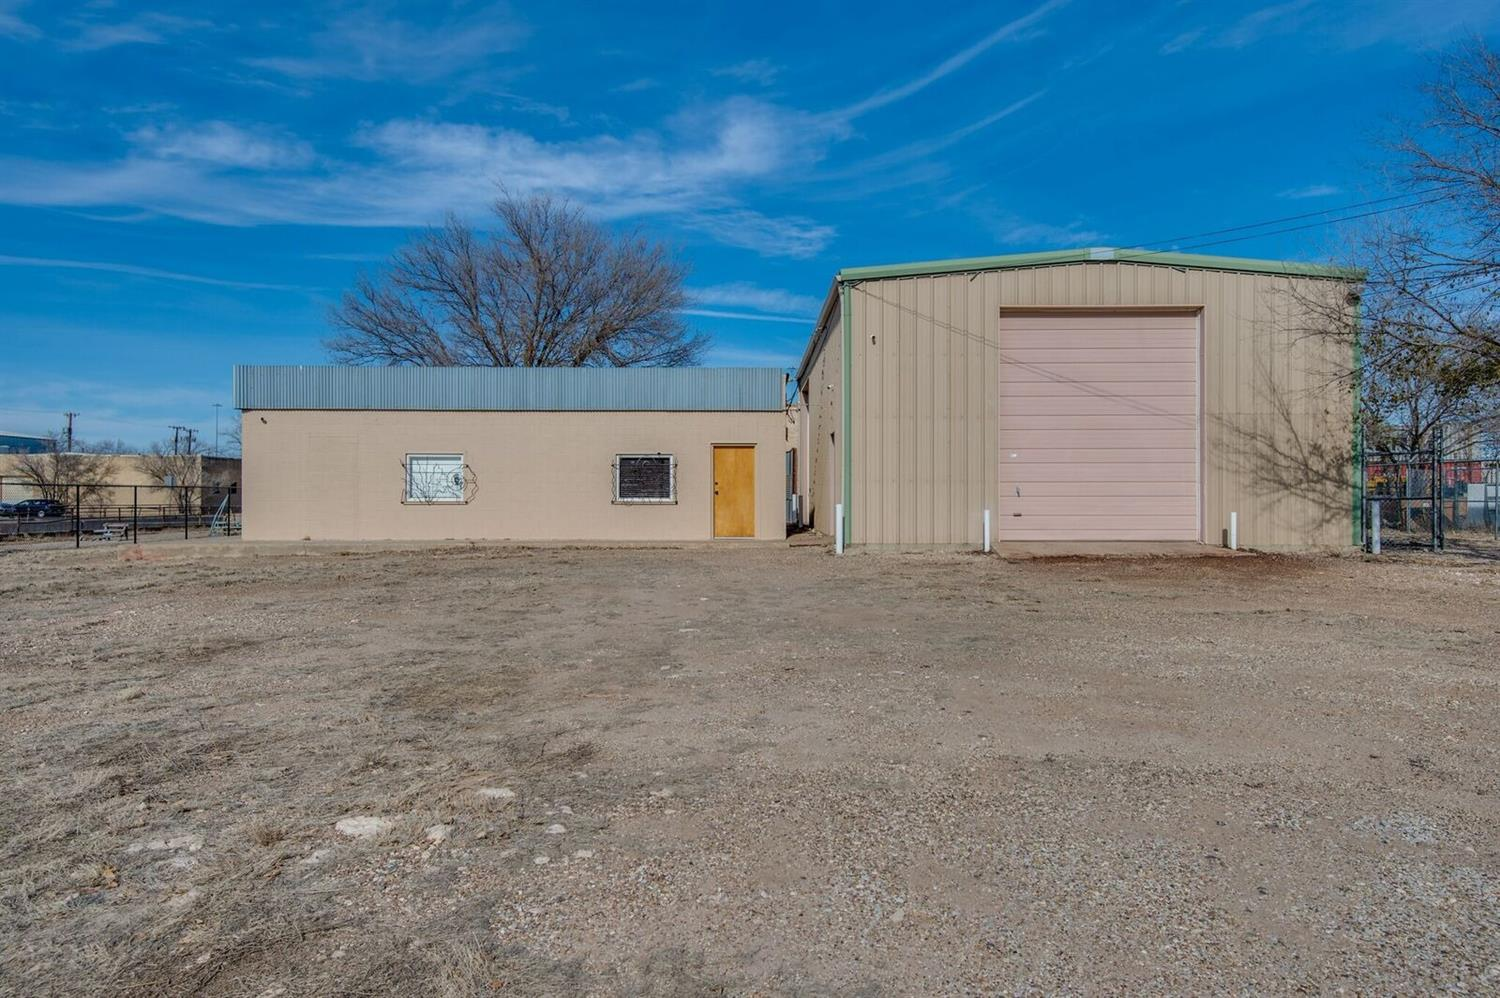 So many opportunities and unique details with this almost half acre property. Every artist's dream, even used to be featured each 1st Friday Art Trail! Really great warehouse in downtown Lubbock featuring a detached studio with 1 large bedroom, huge closet room, 1 bathroom, a kitchen and laundry space. Property is just under half an acre. Metal fence with electric access gate. Studio has new cabinets, track lights, blinds and new appliances.  2095 SF warehouse has two storerooms with storage above them and two garage doors - one is electric and the other is chain hoist. Features heat sensors connected to alarms in both buildings. Skylights in the warehouse replaced and the roof 80% replaced in 2014. The metal roof on the studio had rubberized coating added in 2015. Security system with 8 cameras, low light recorder, motion detection and separate security panels for each building included.